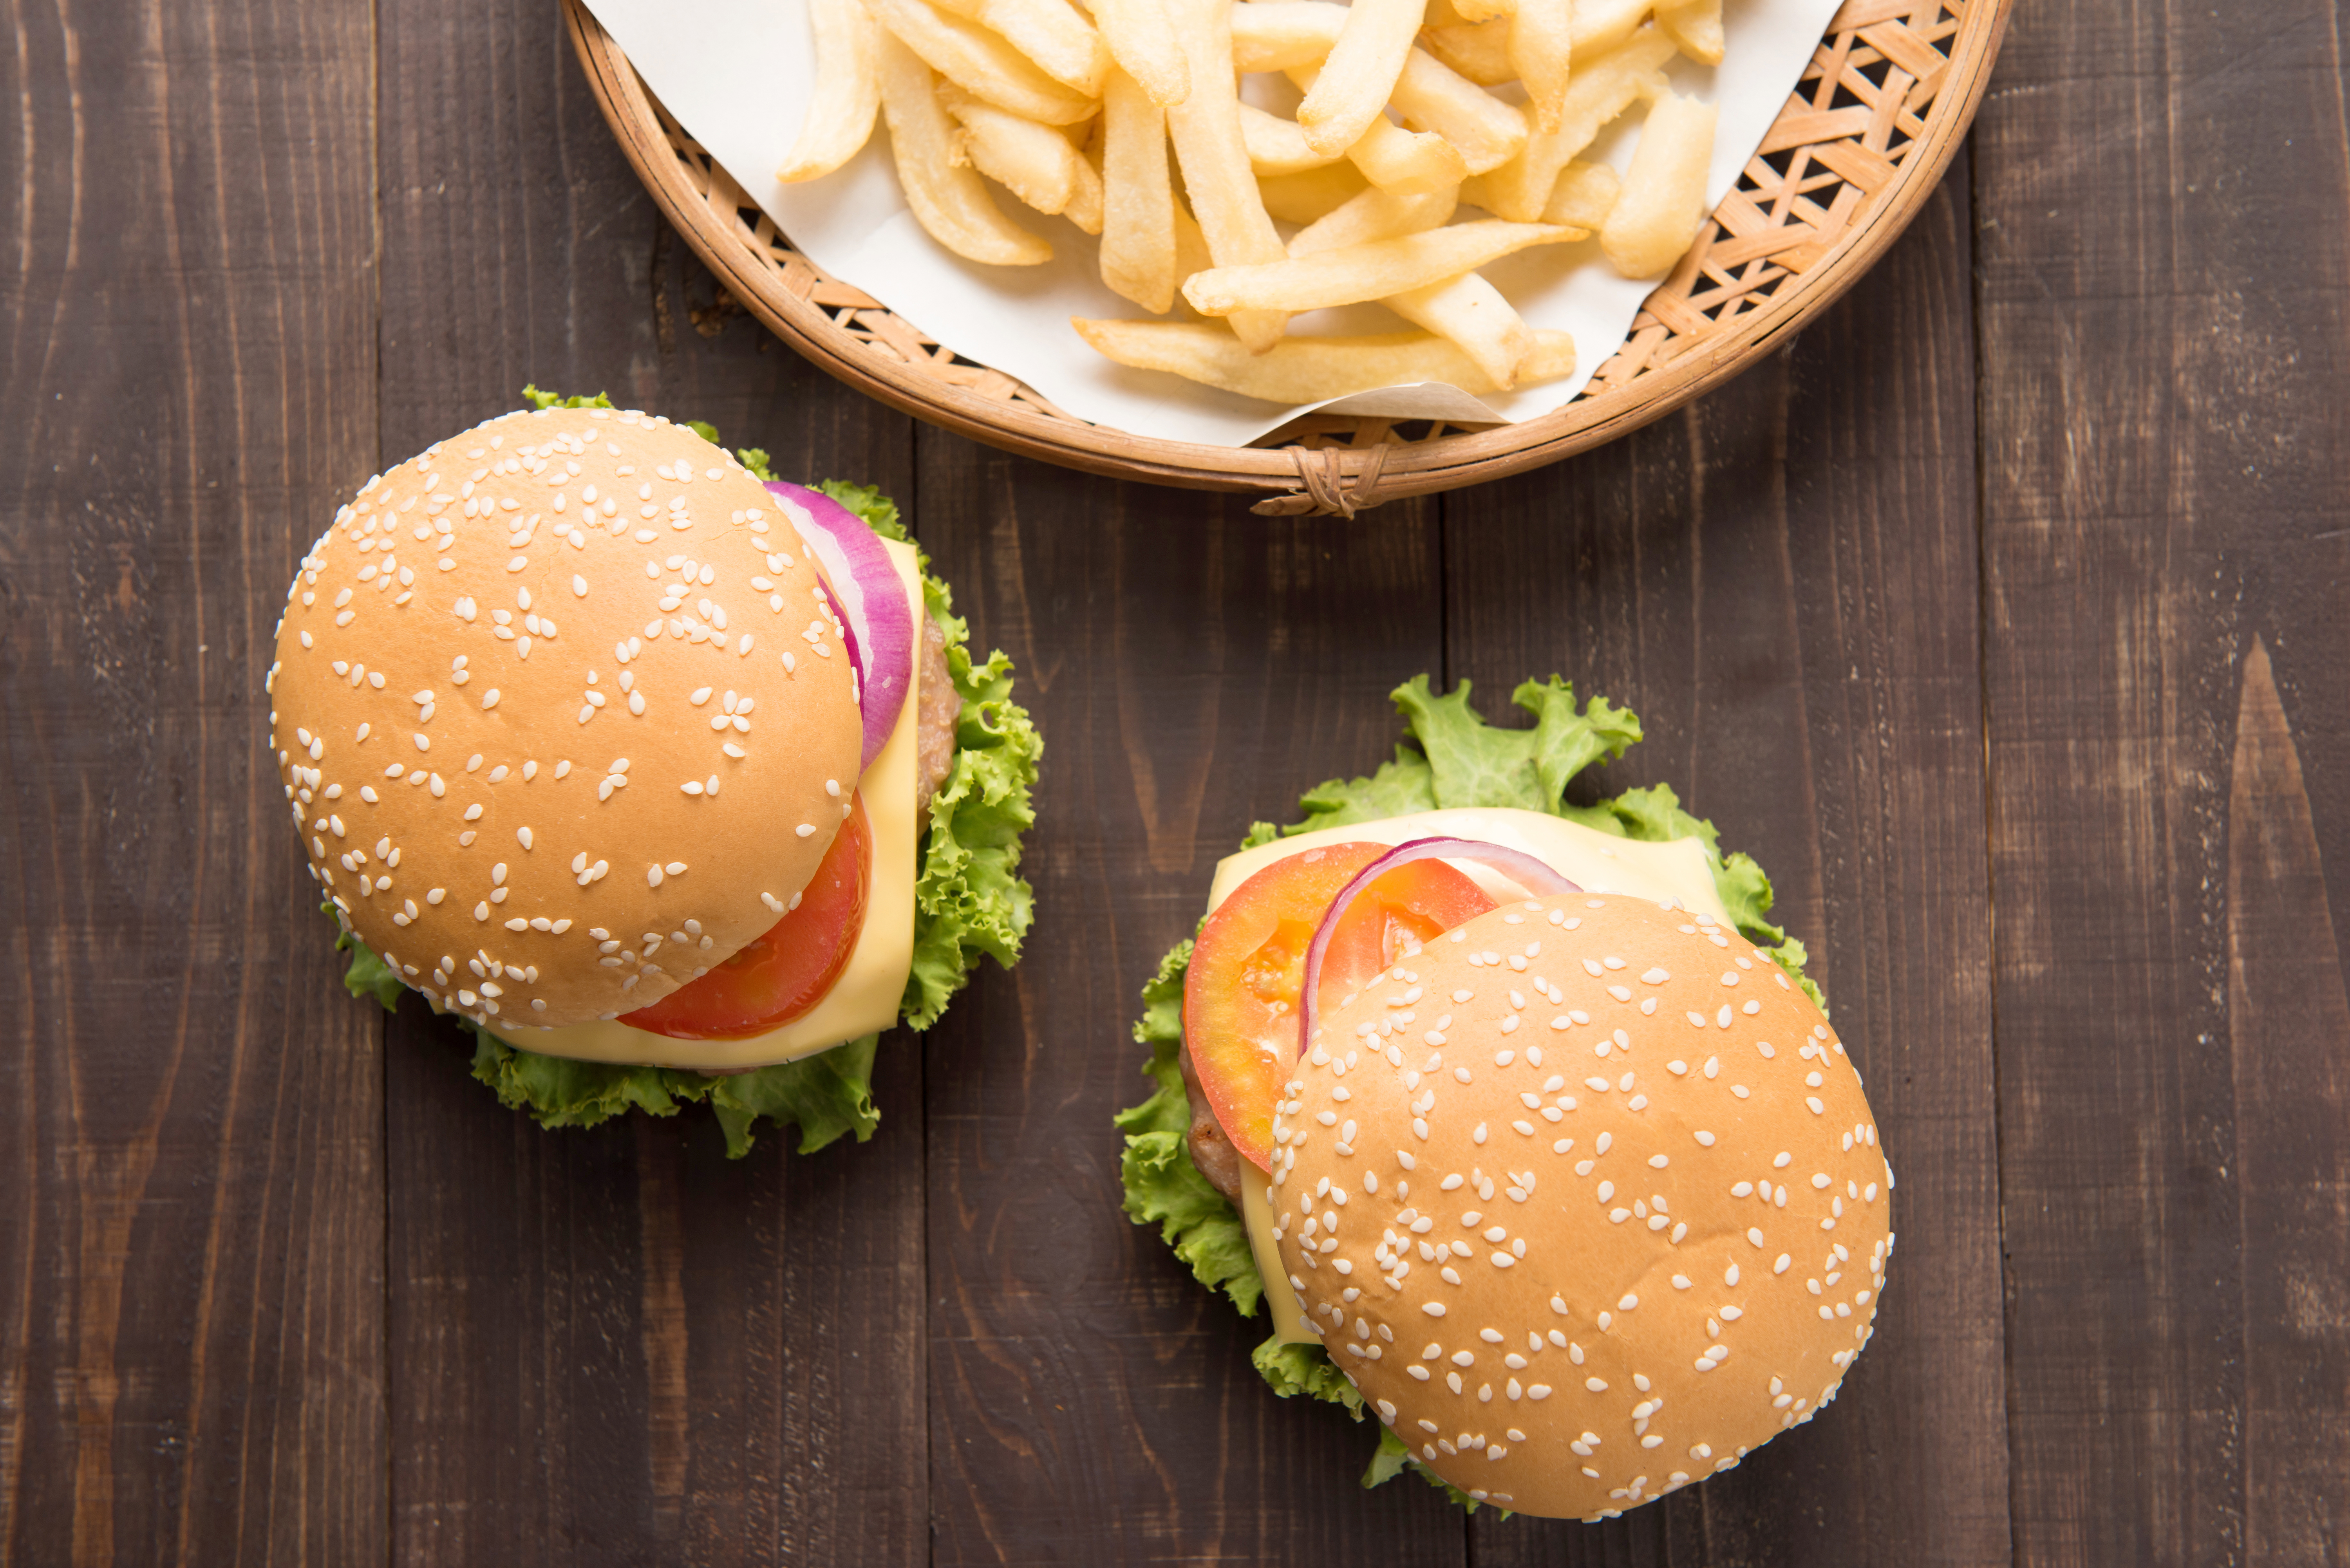 What Kinds of Meat Do Fast-Food Places Use in Their Burgers